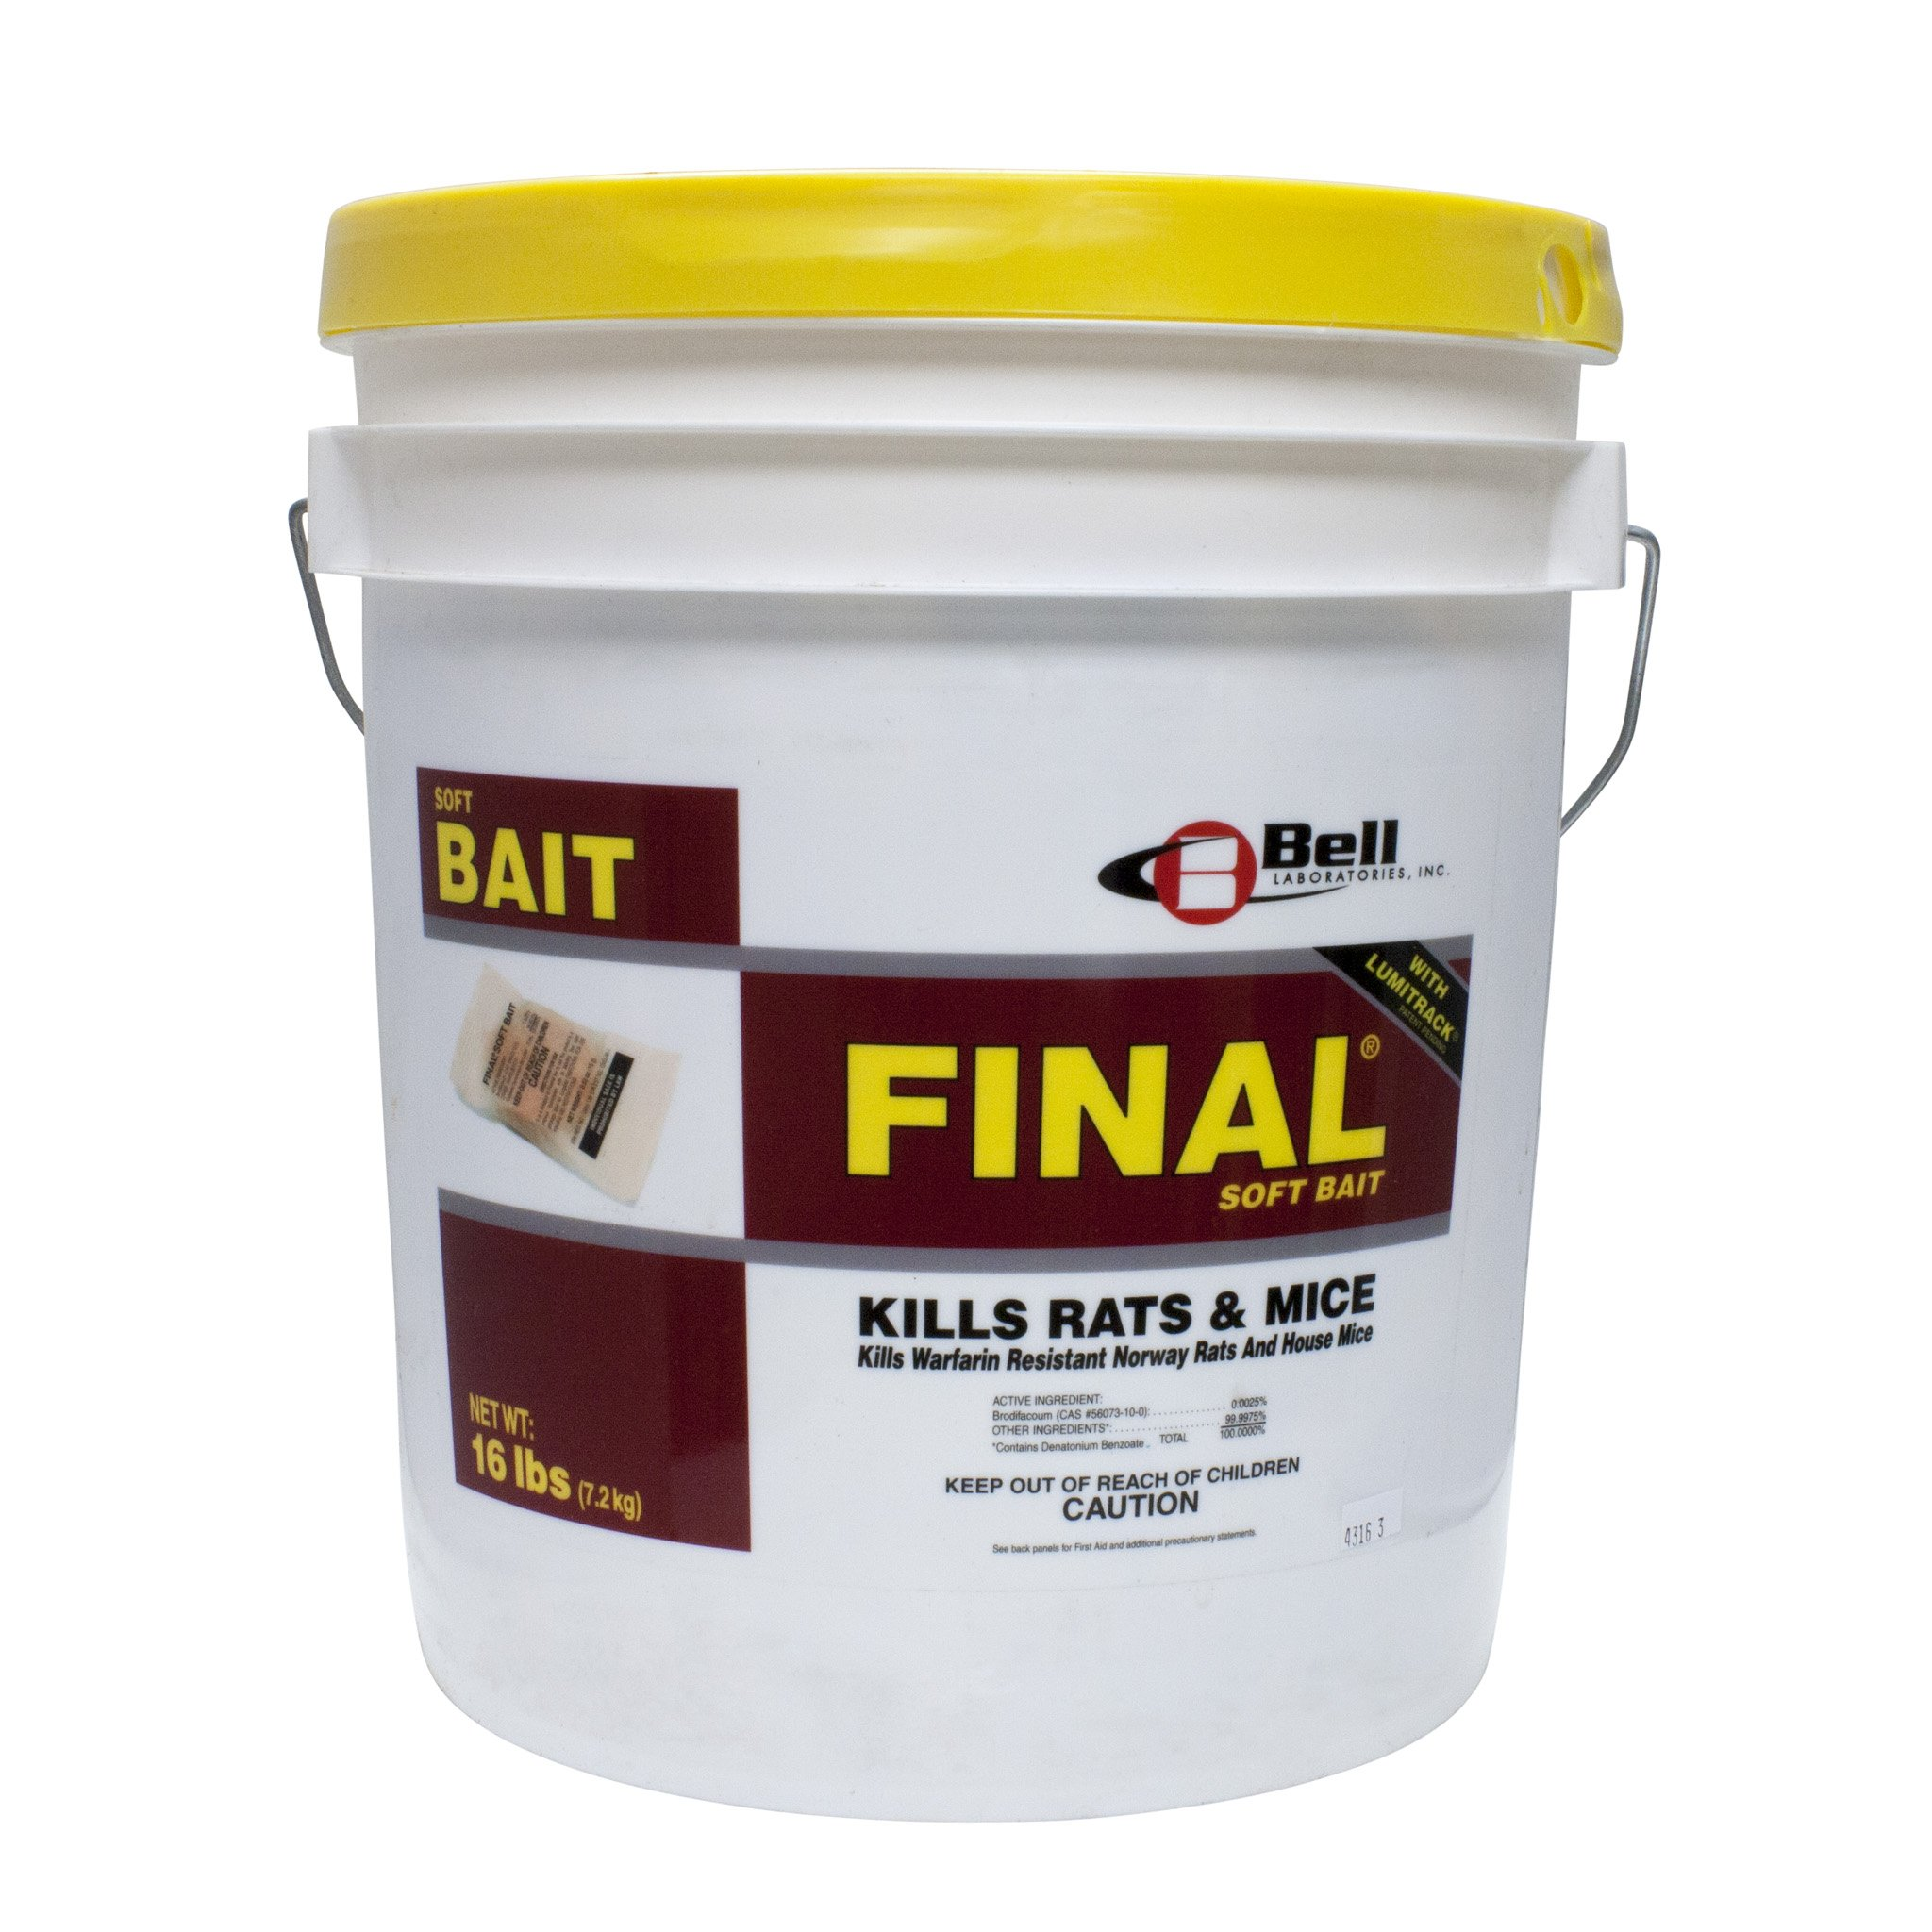 Bell Labs FINAL Soft Bait with Lumitrack (2) 16 lb pails